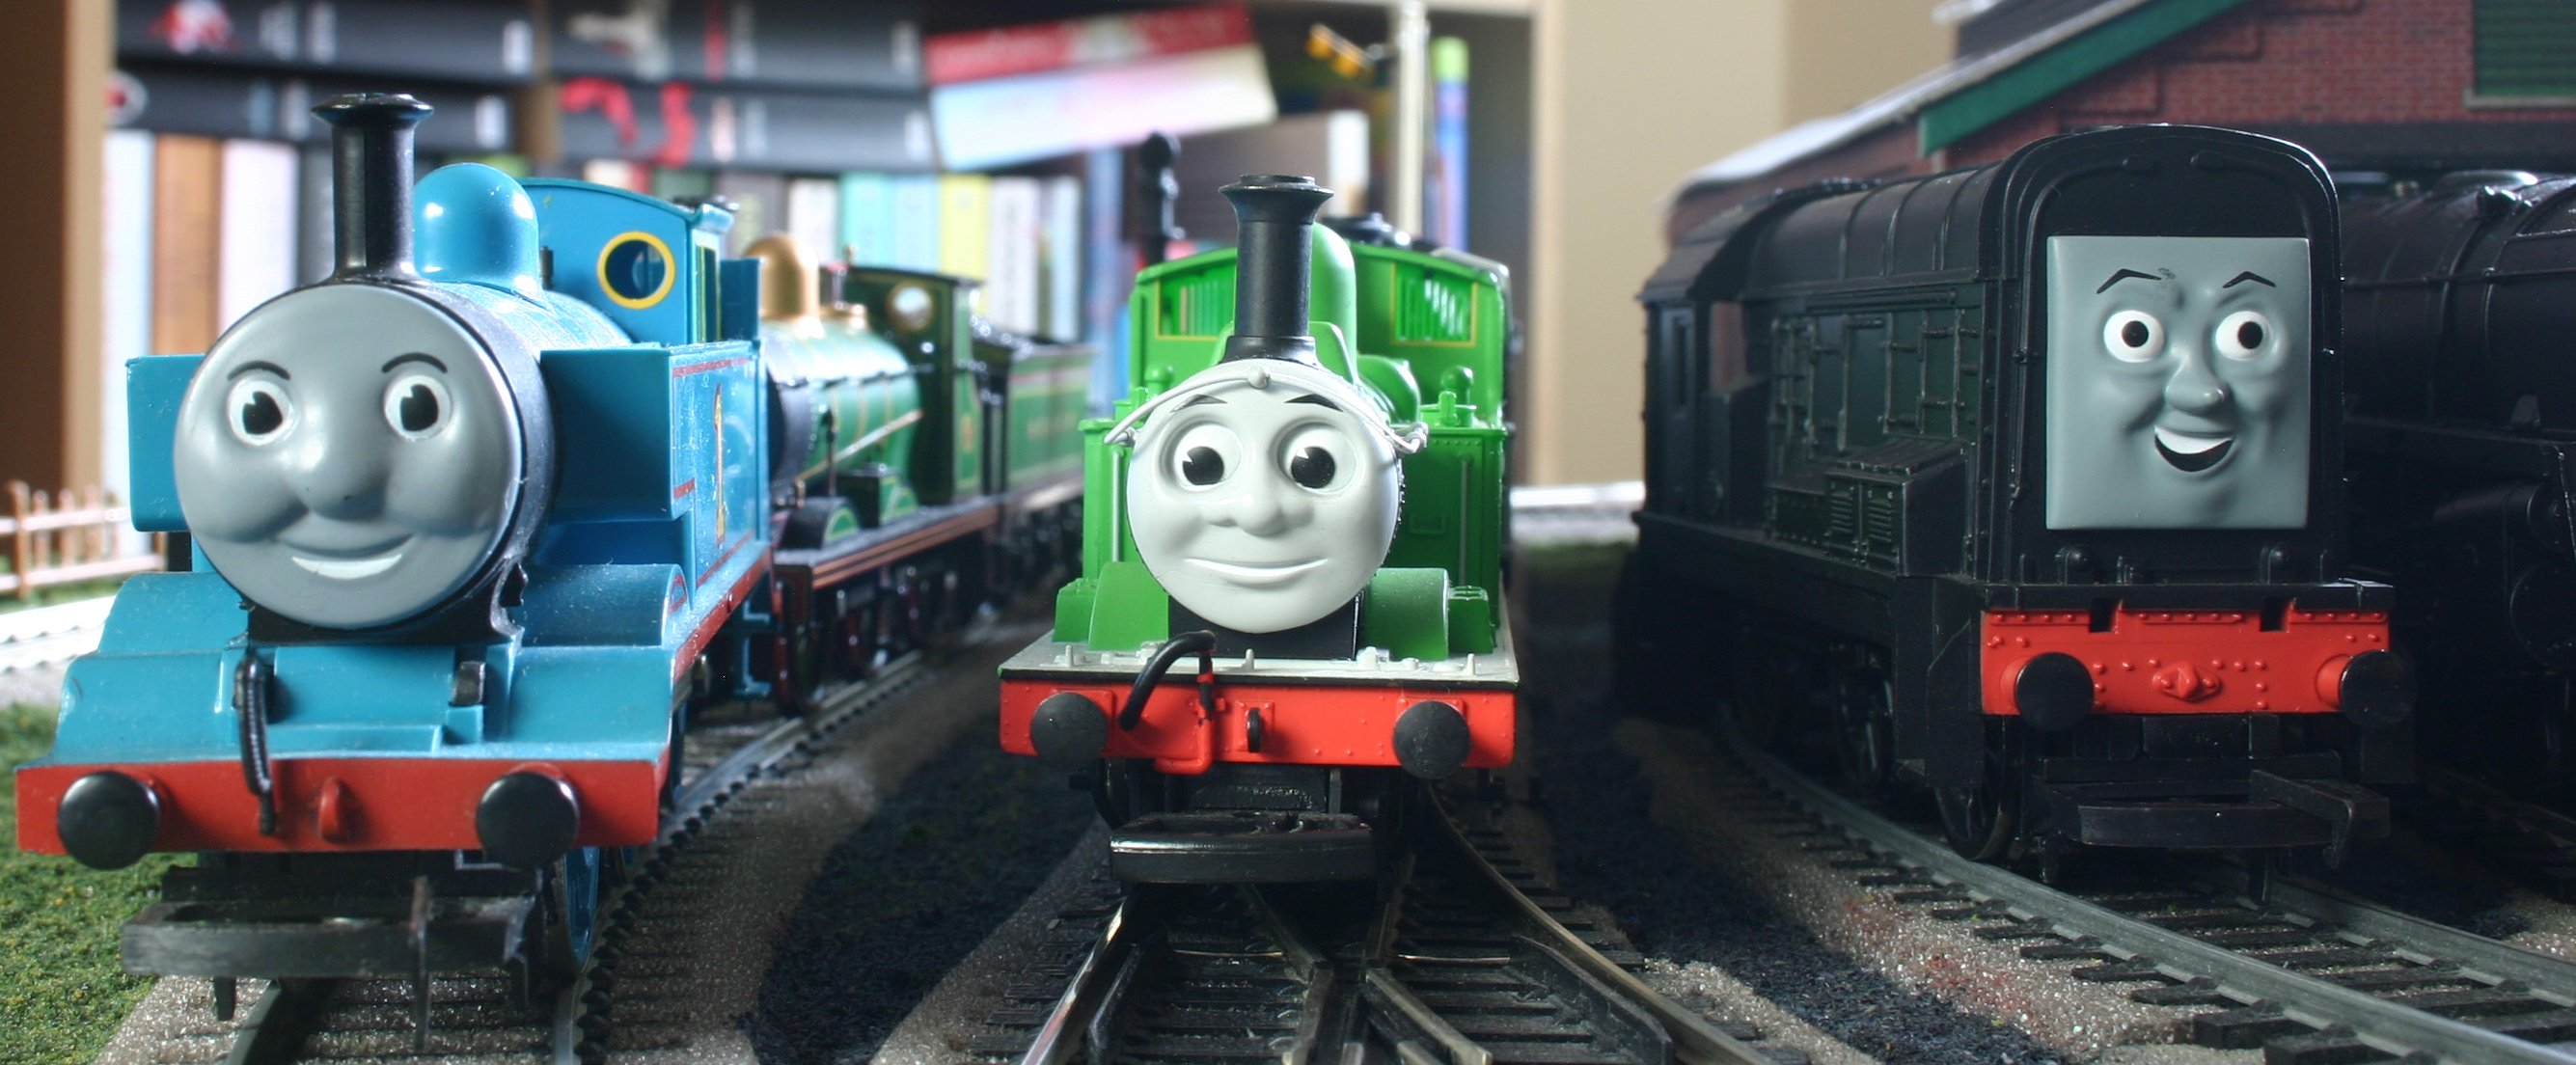 diesel thomas the tank engine - photo #14